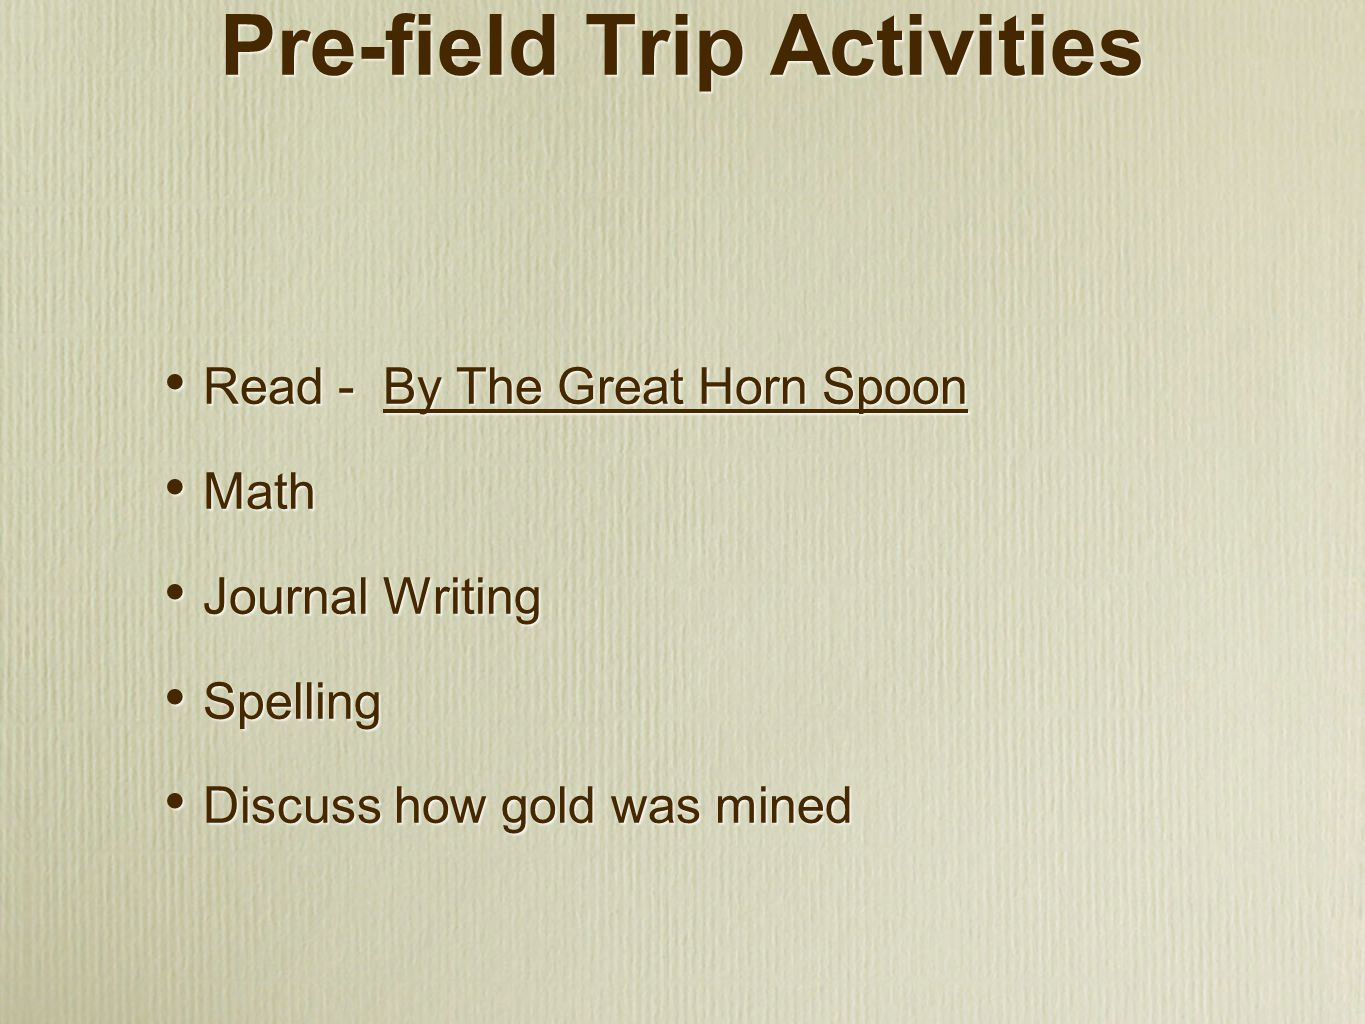 Pre-field Trip Activities Read - By The Great Horn Spoon Math Journal Writing Spelling Discuss how gold was mined Read - By The Great Horn Spoon Math Journal Writing Spelling Discuss how gold was mined